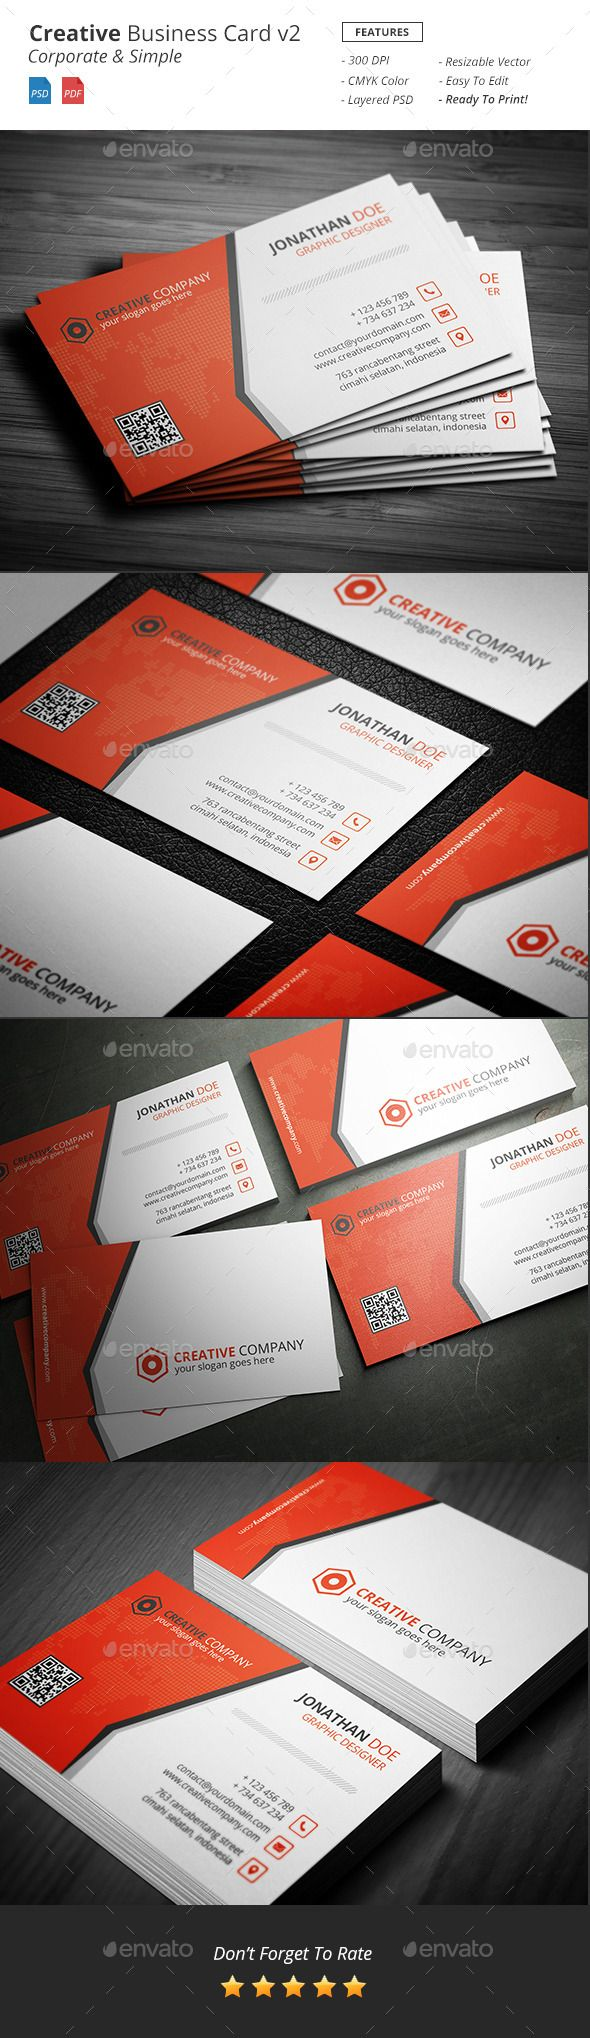 Creative - Bussiness Card v2 - Creative Business Cards Download here : http://graphicriver.net/item/creative-bussiness-card-v2/12525241?s_rank=1782&ref=Al-fatih